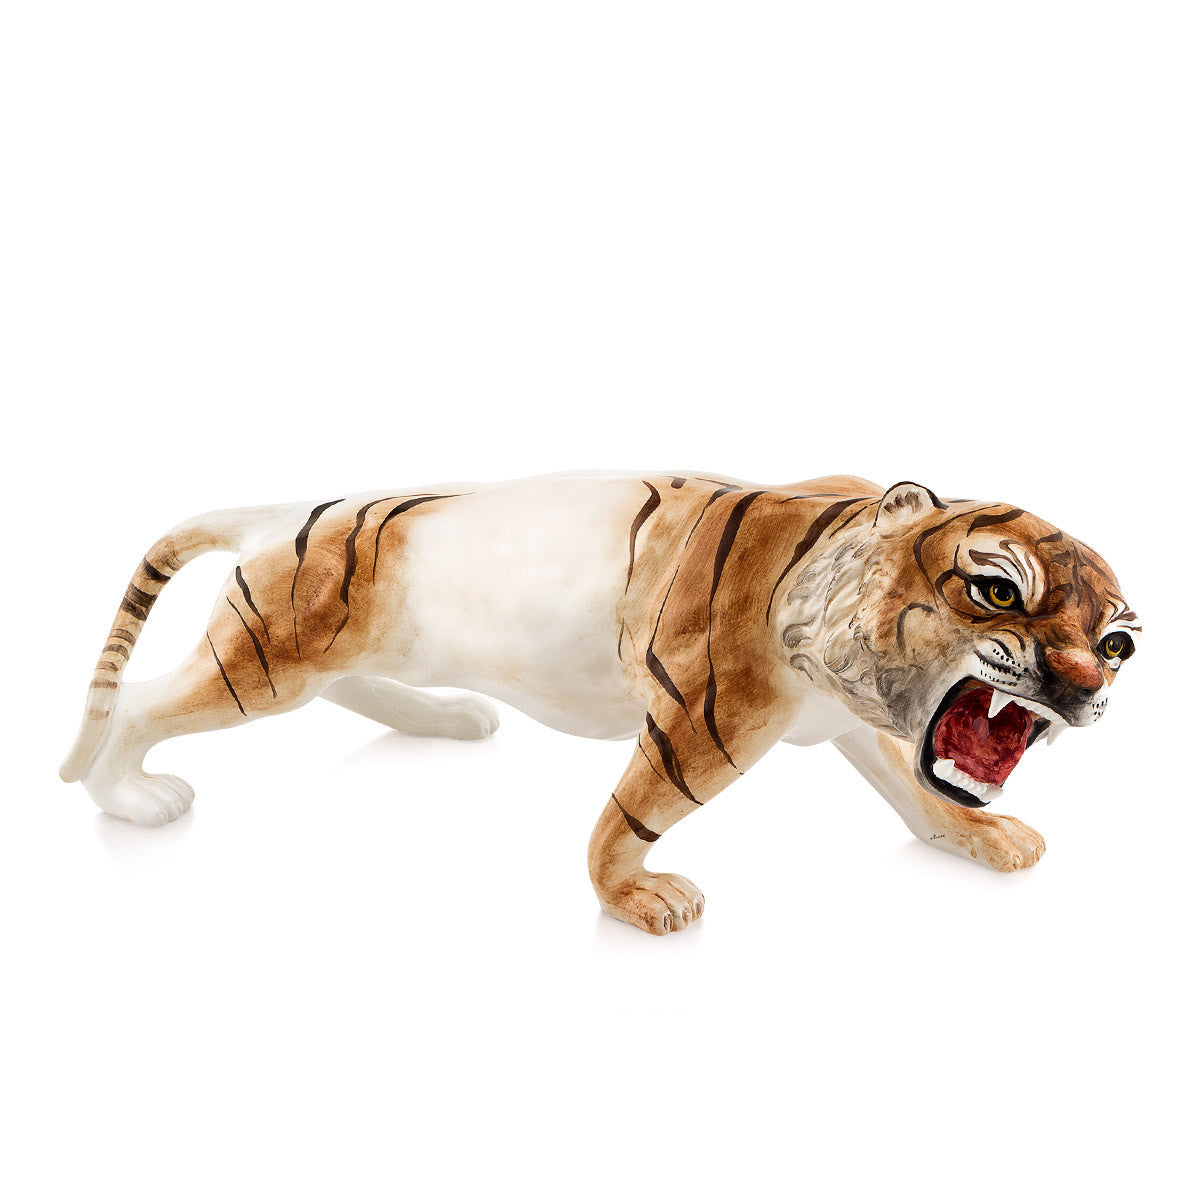 roaring tiger hand-painted ceramic porcelain finished in traditional color